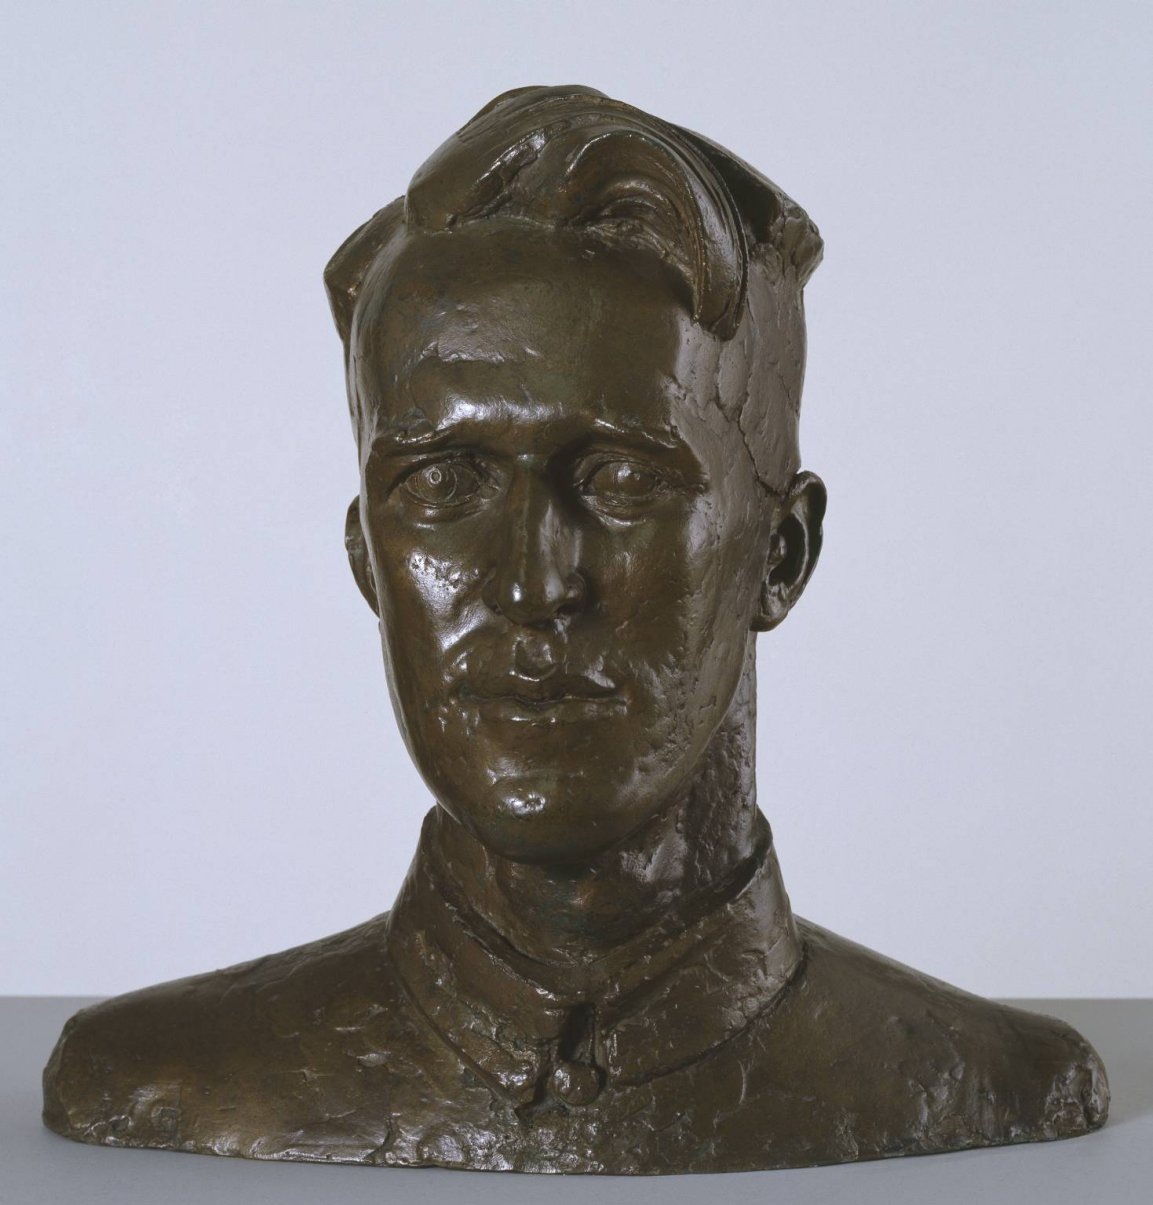 Head of T.E. Lawrence by Eric Kennington (1926)